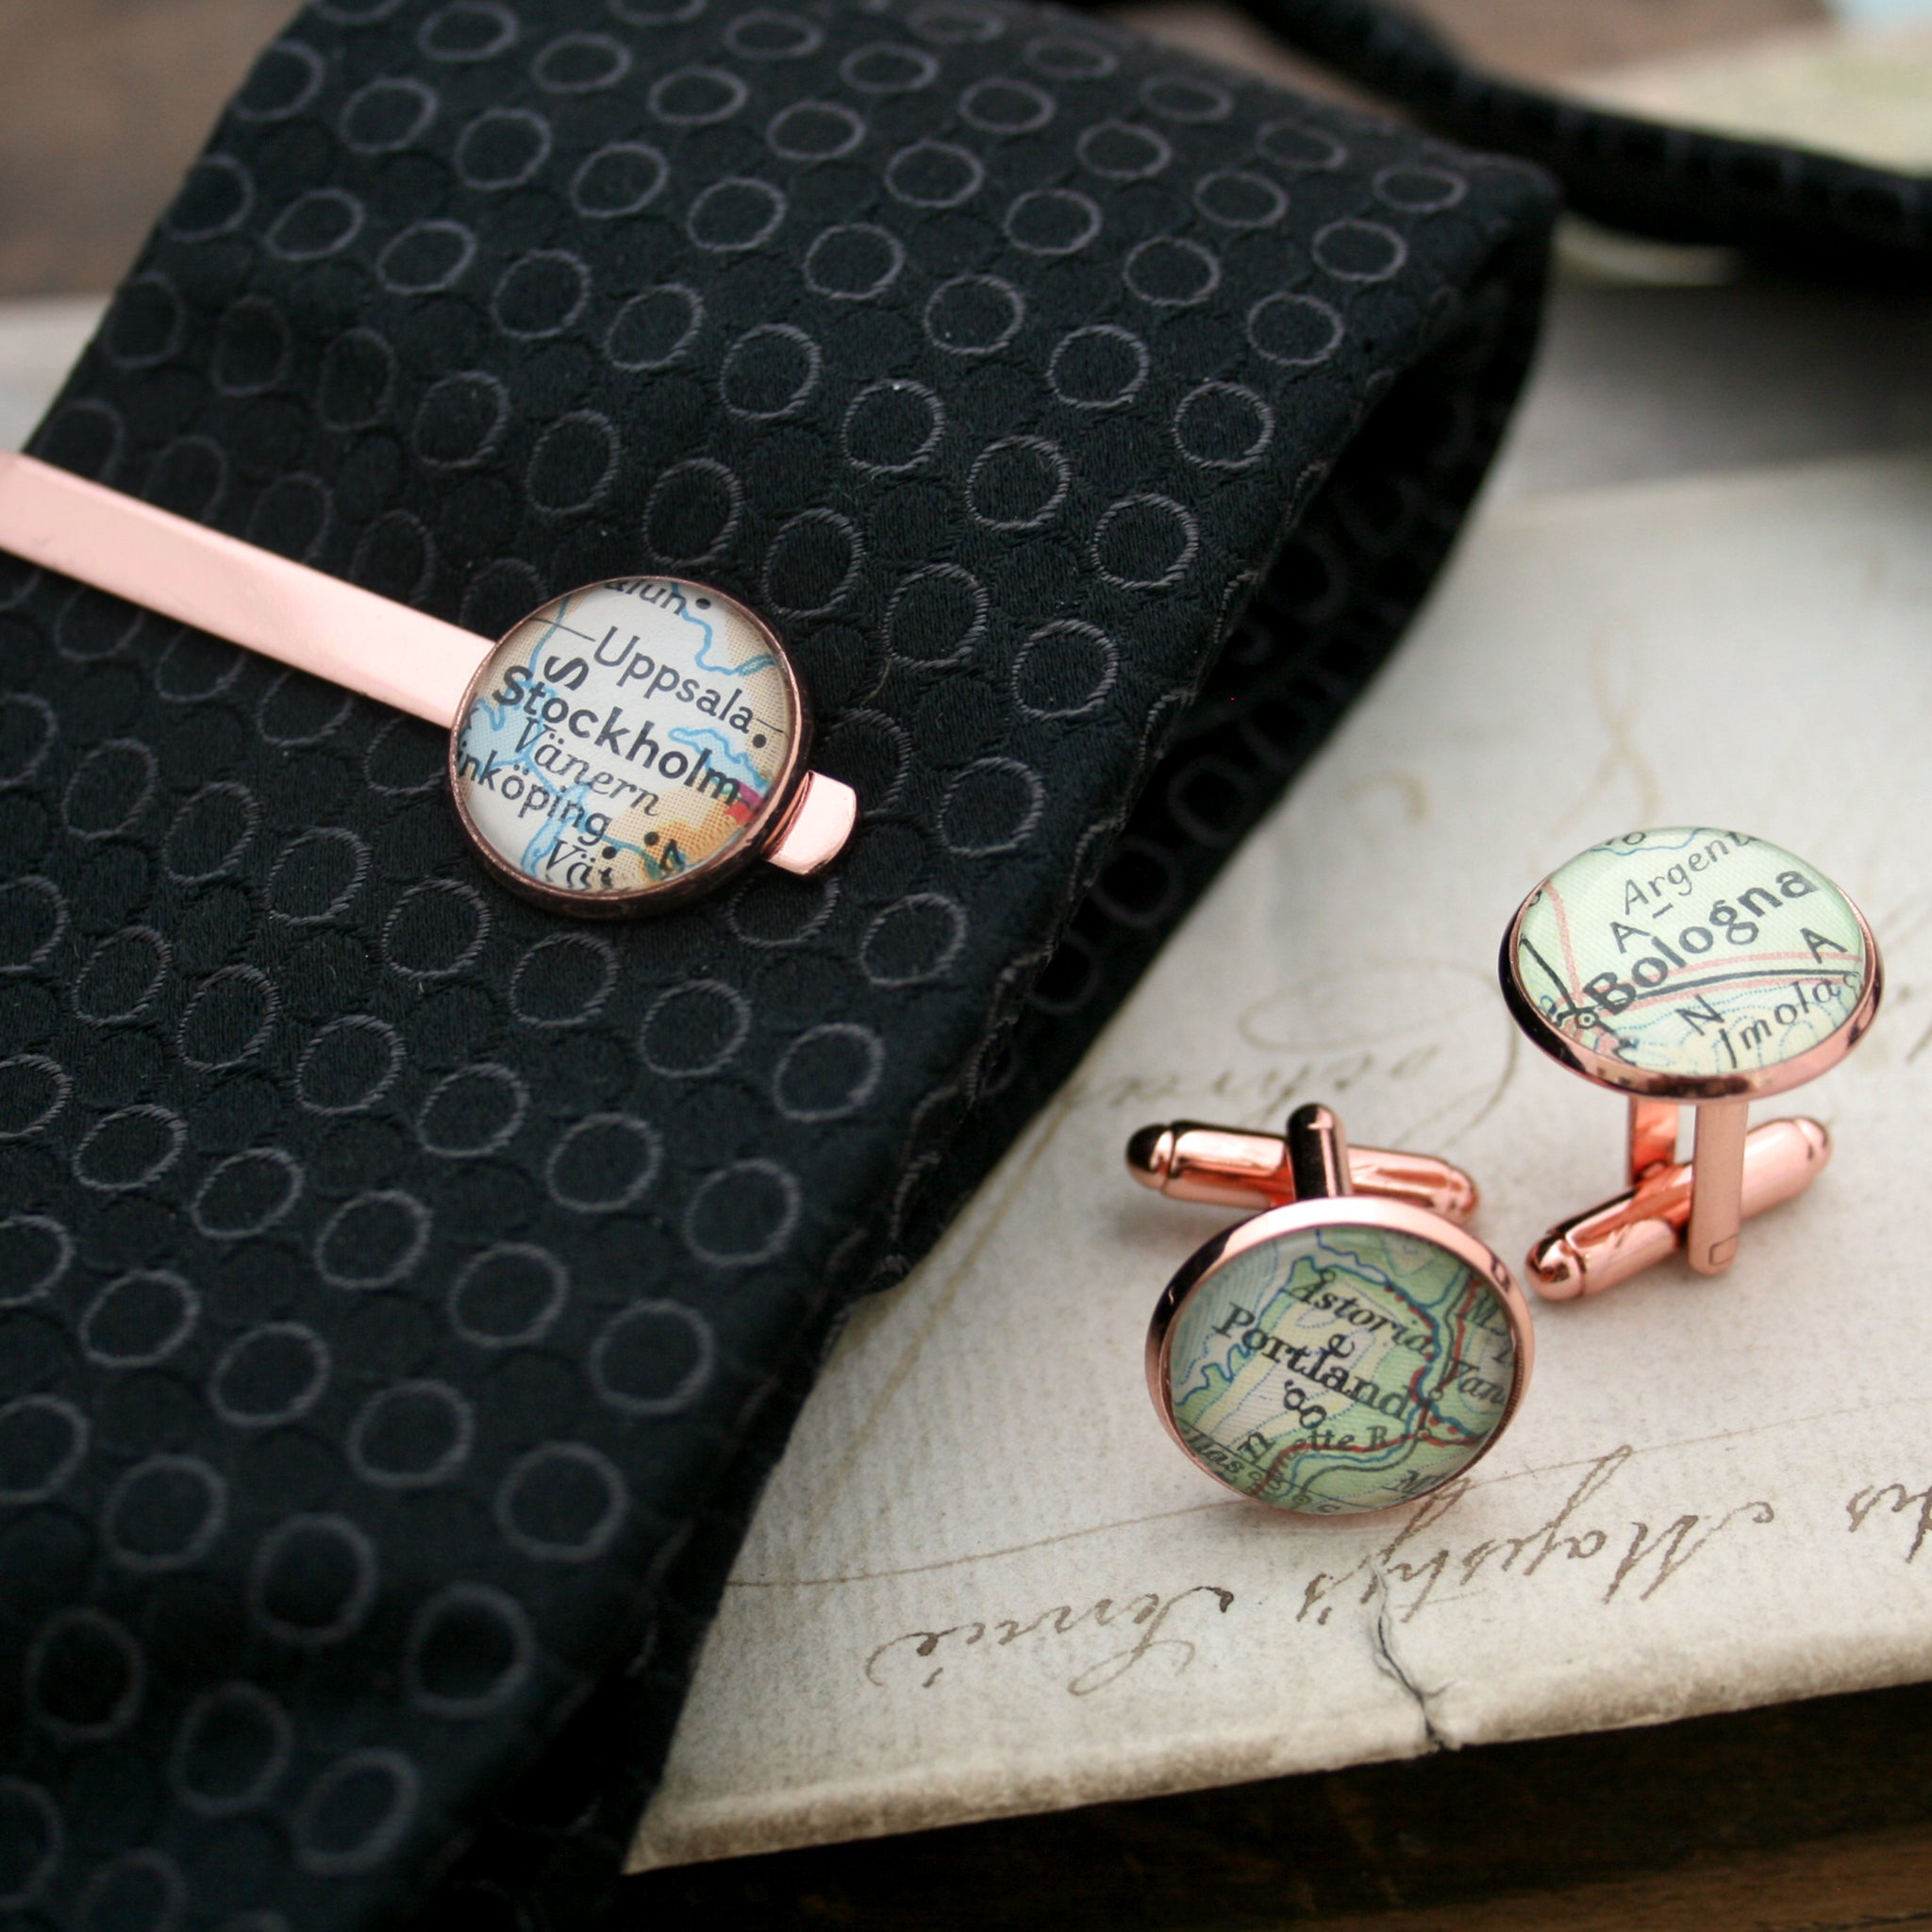 Tie clip on tie and cufflinks in rose gold color featuring selection of map locations